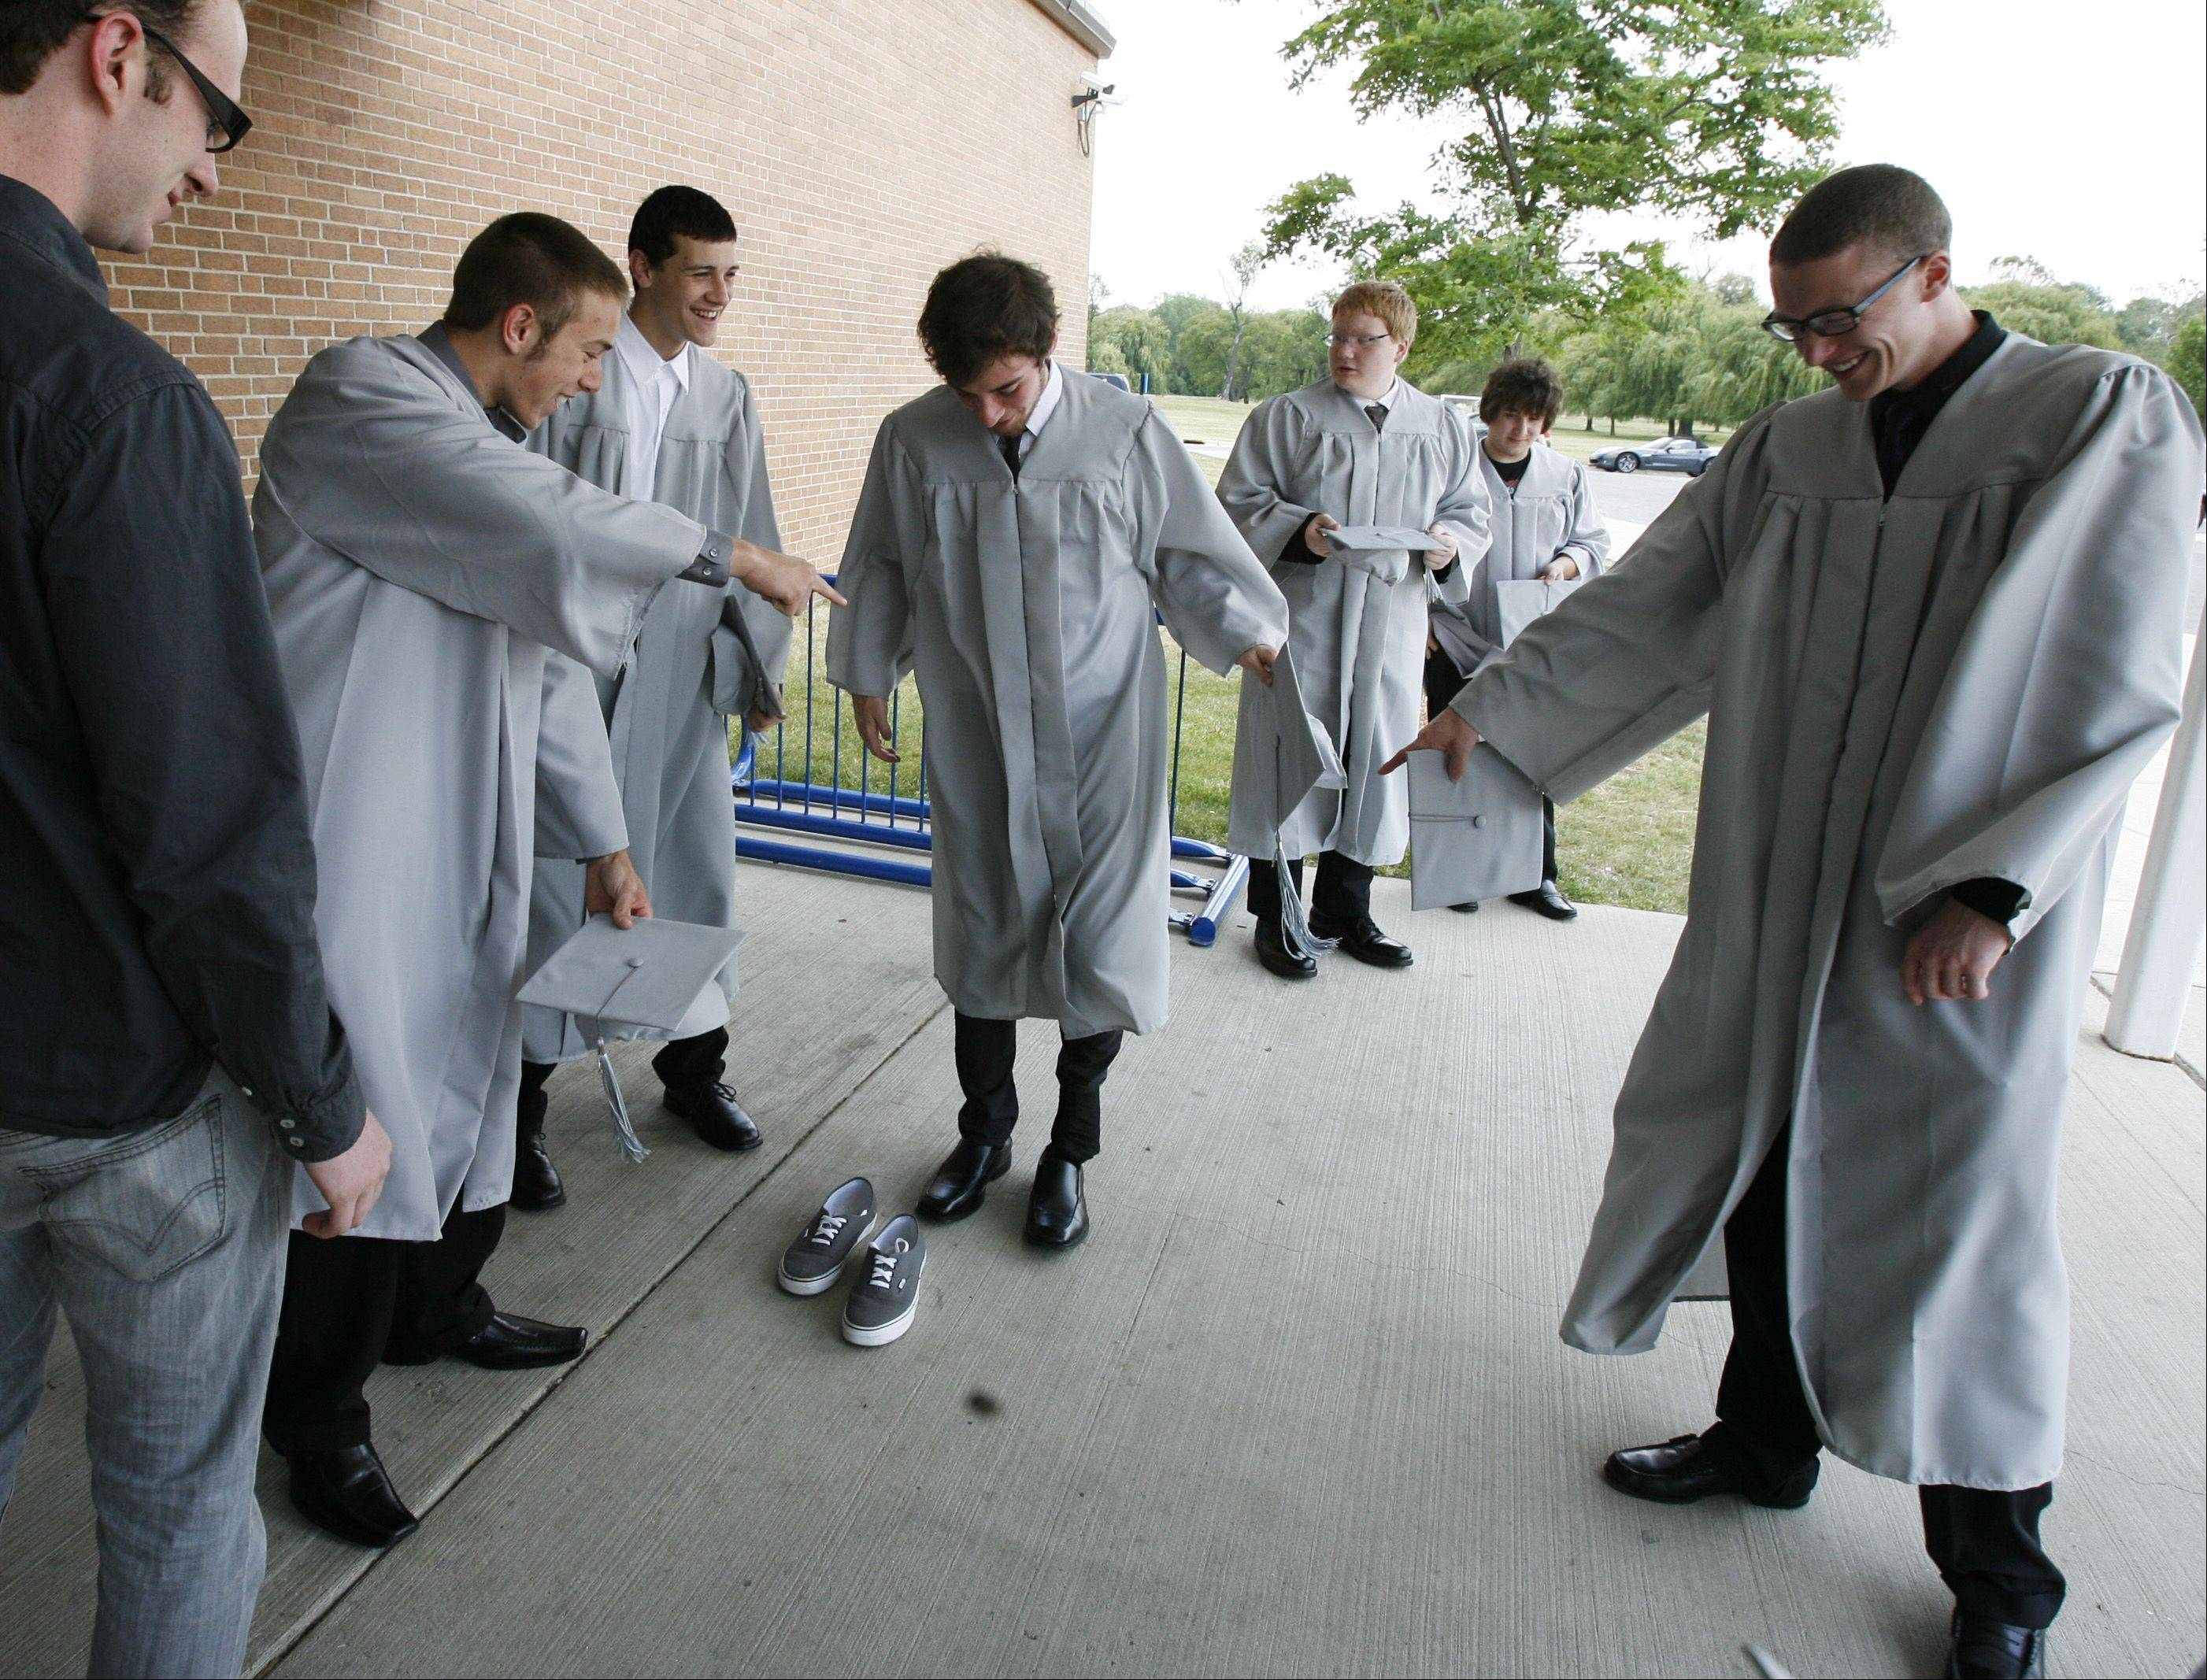 Matt Sutton, center, gets some fashion consulting from his friends to wear dress shoes before the Willowbrook High School graduation.